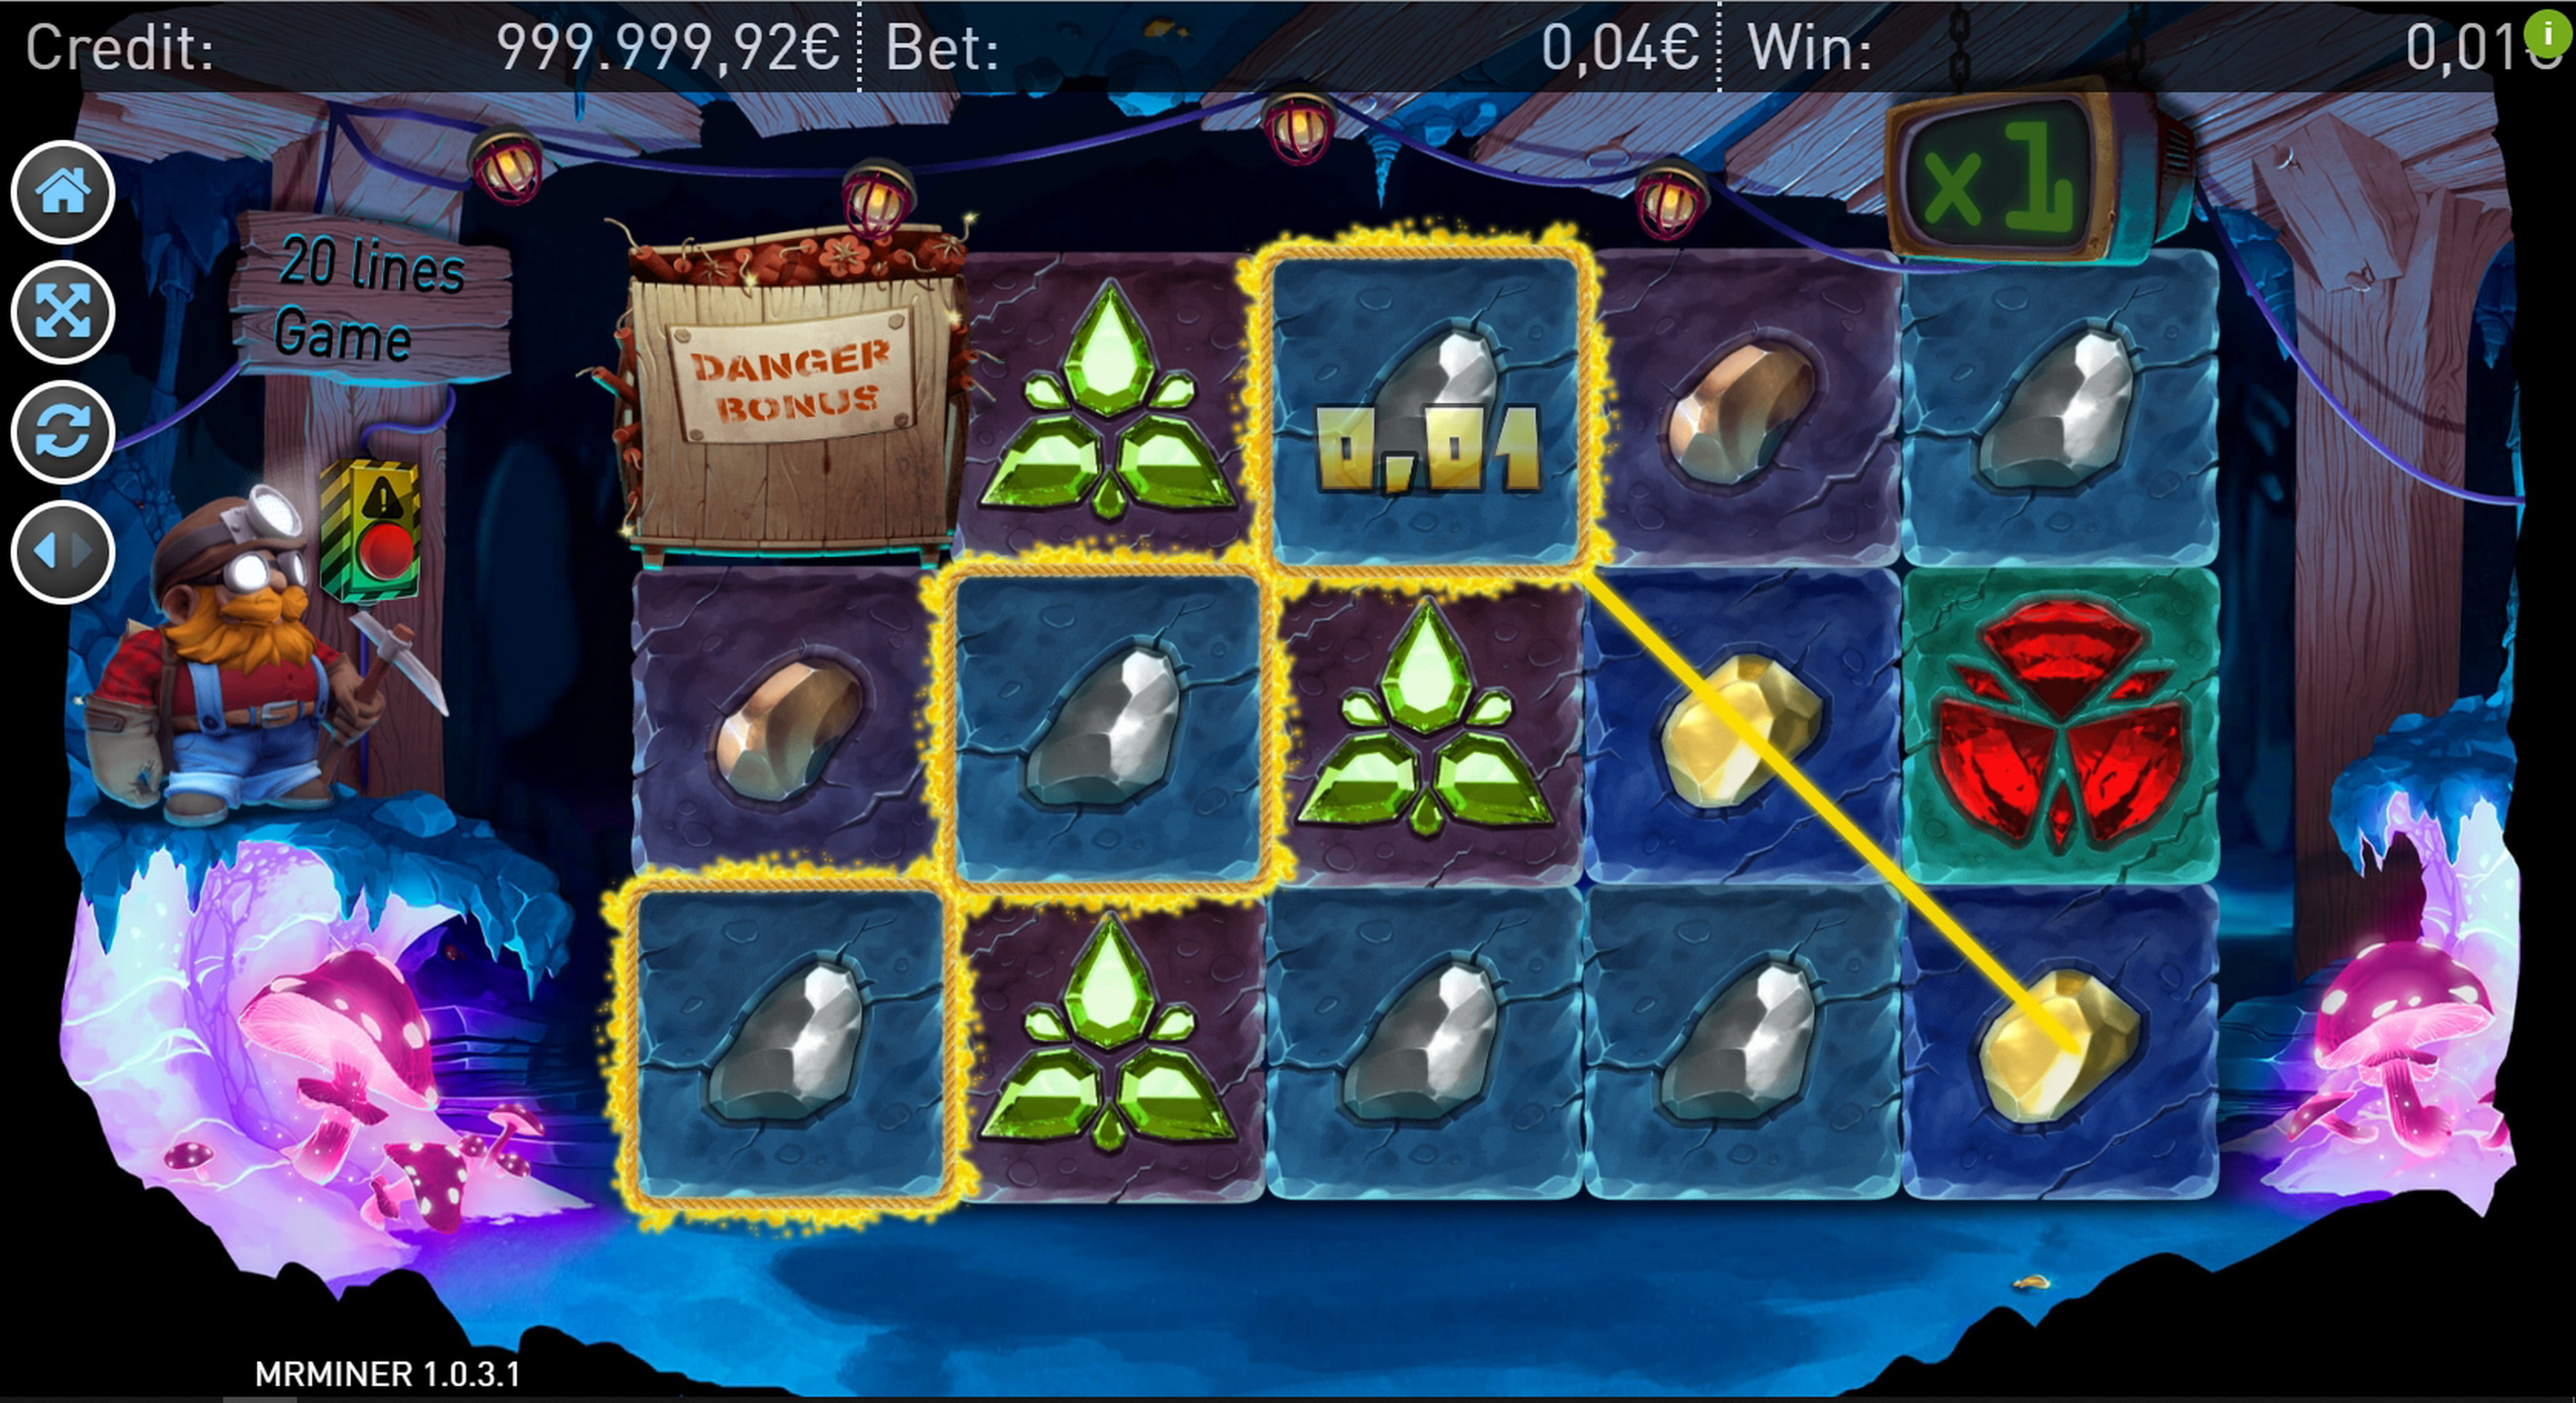 Win Money in Mr. Miner Free Slot Game by RFranco Group